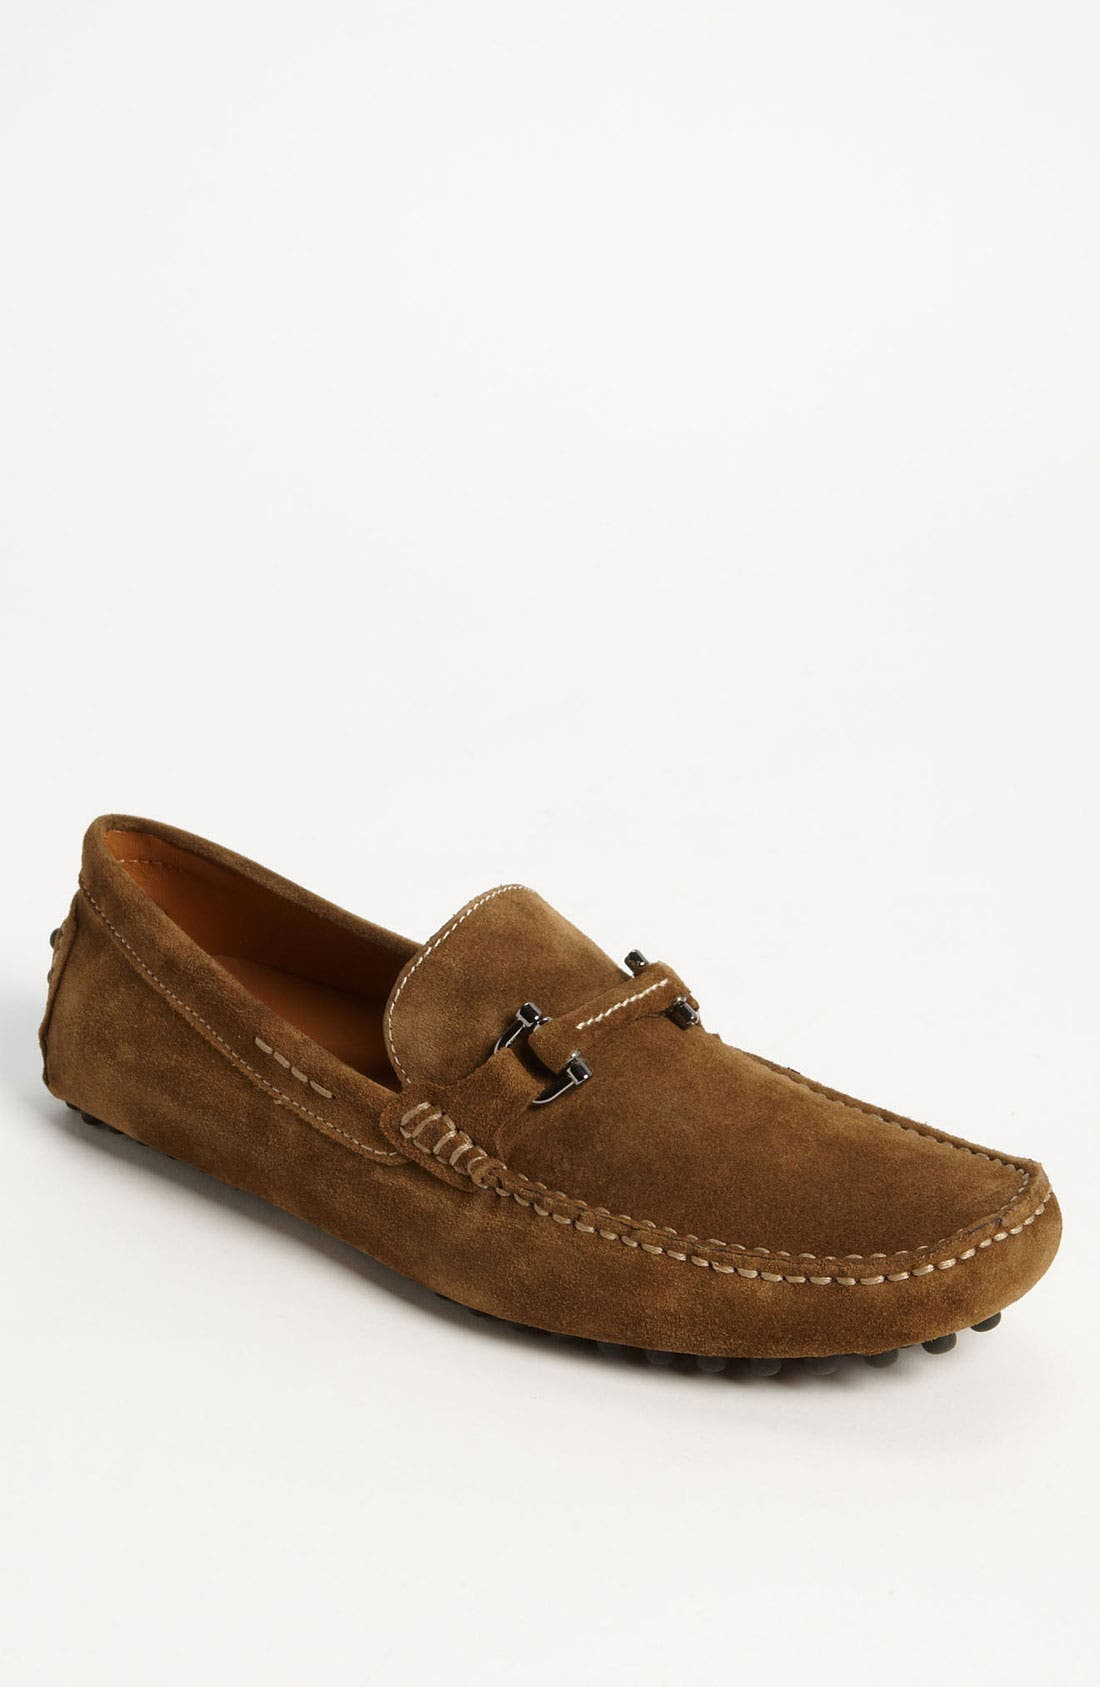 'Antigua' Driving Shoe,                             Main thumbnail 1, color,                             Tobacco Suede